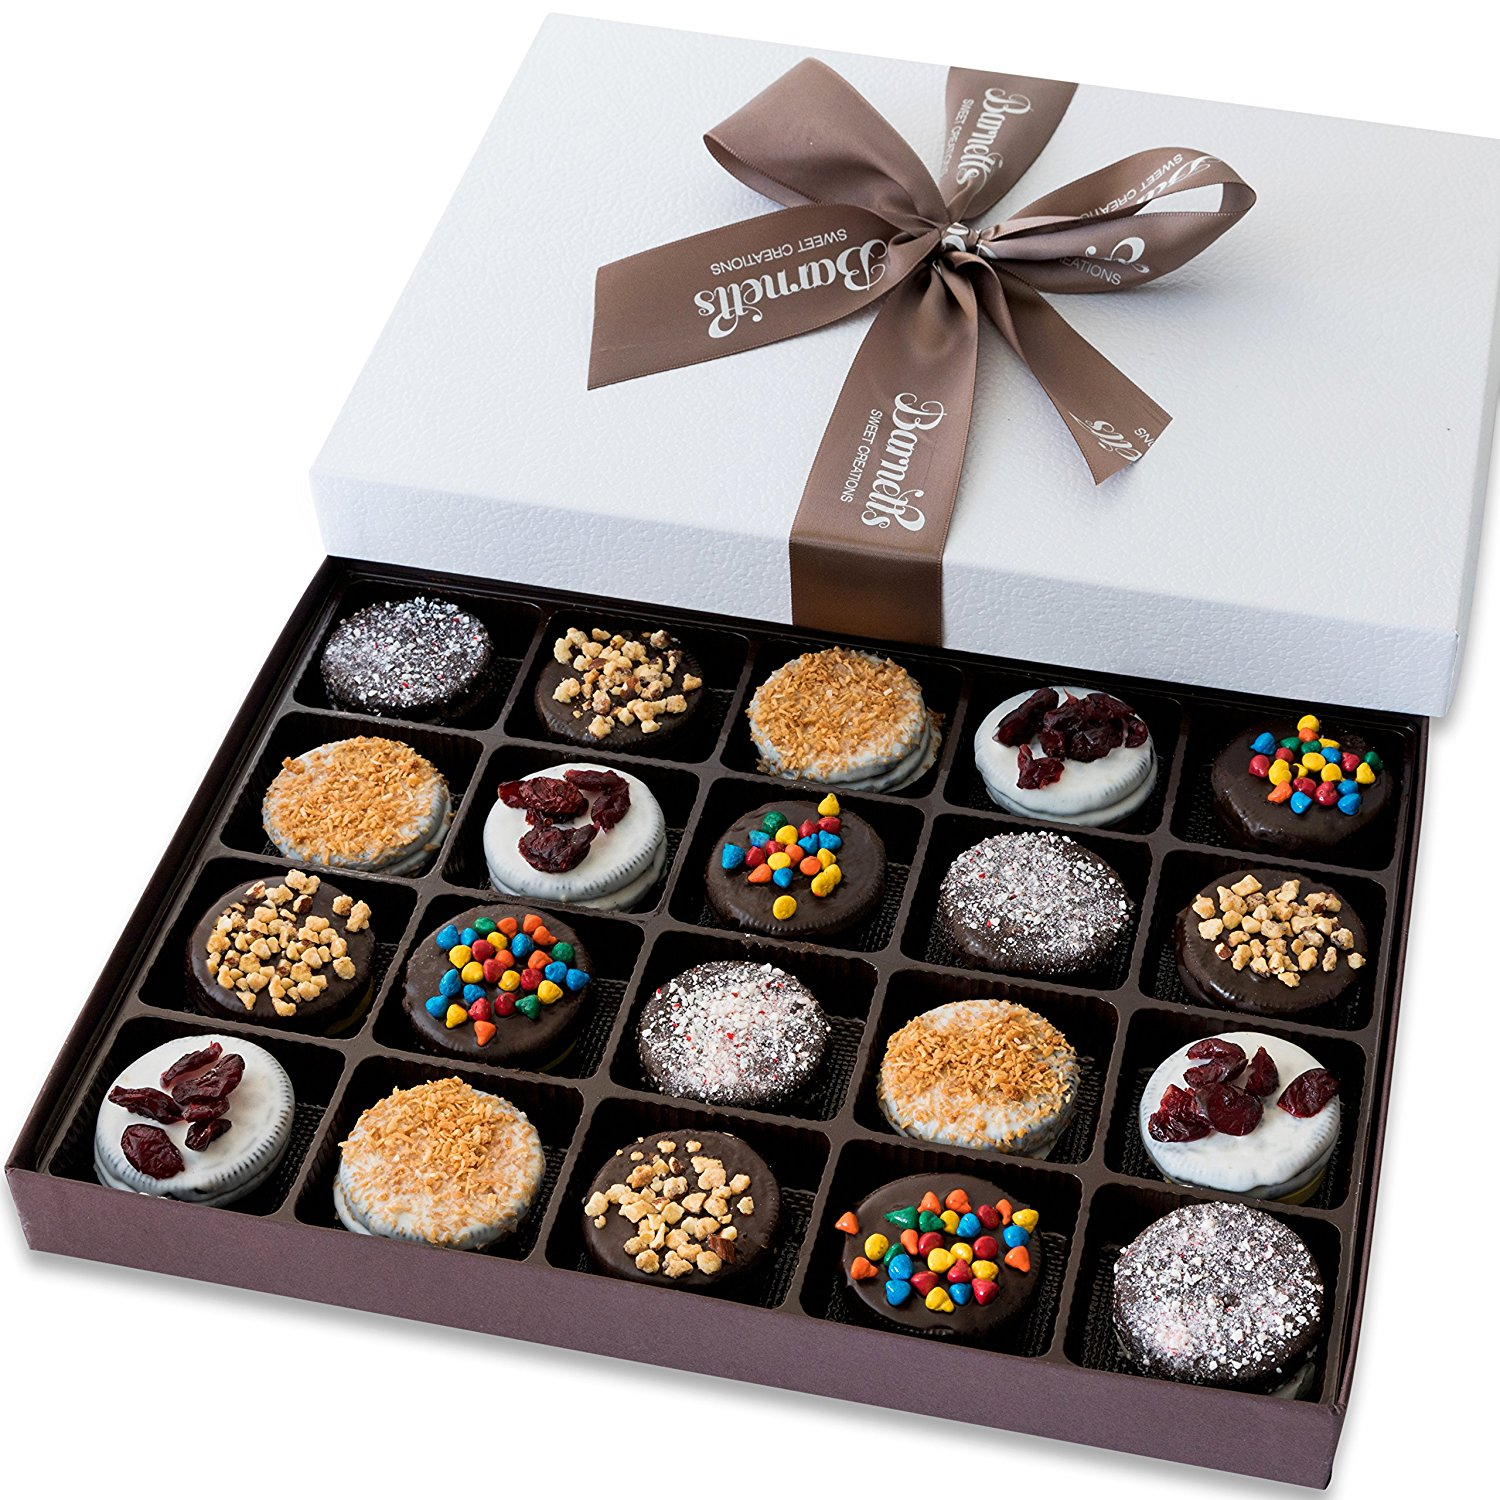 Cookie Gift Boxes & Baskets - Best Holiday Treats, Snacks ...